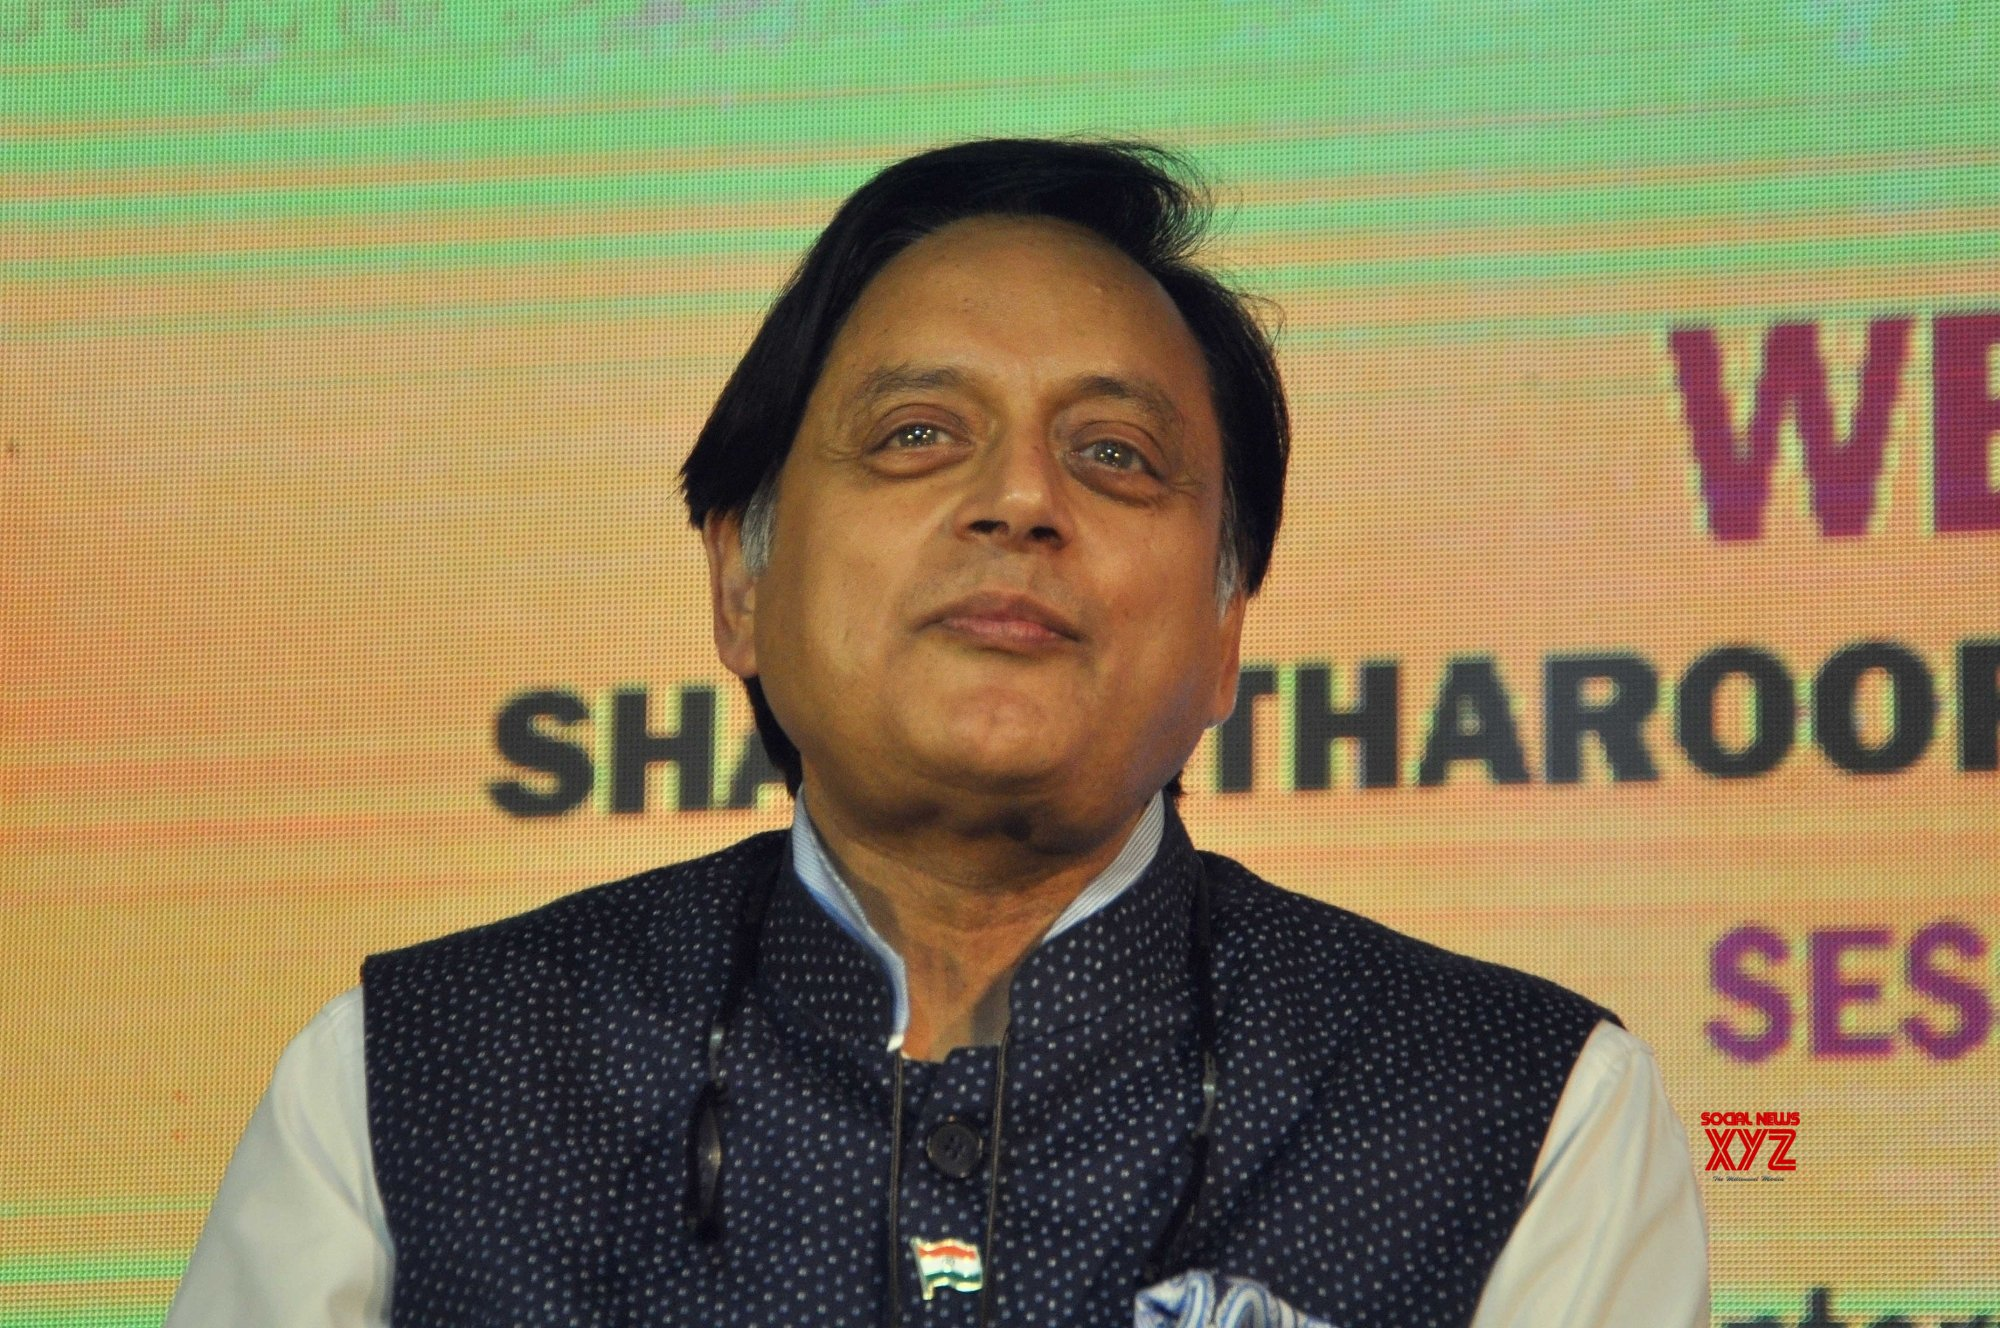 Tharoor fined Rs 5,000 by Delhi court